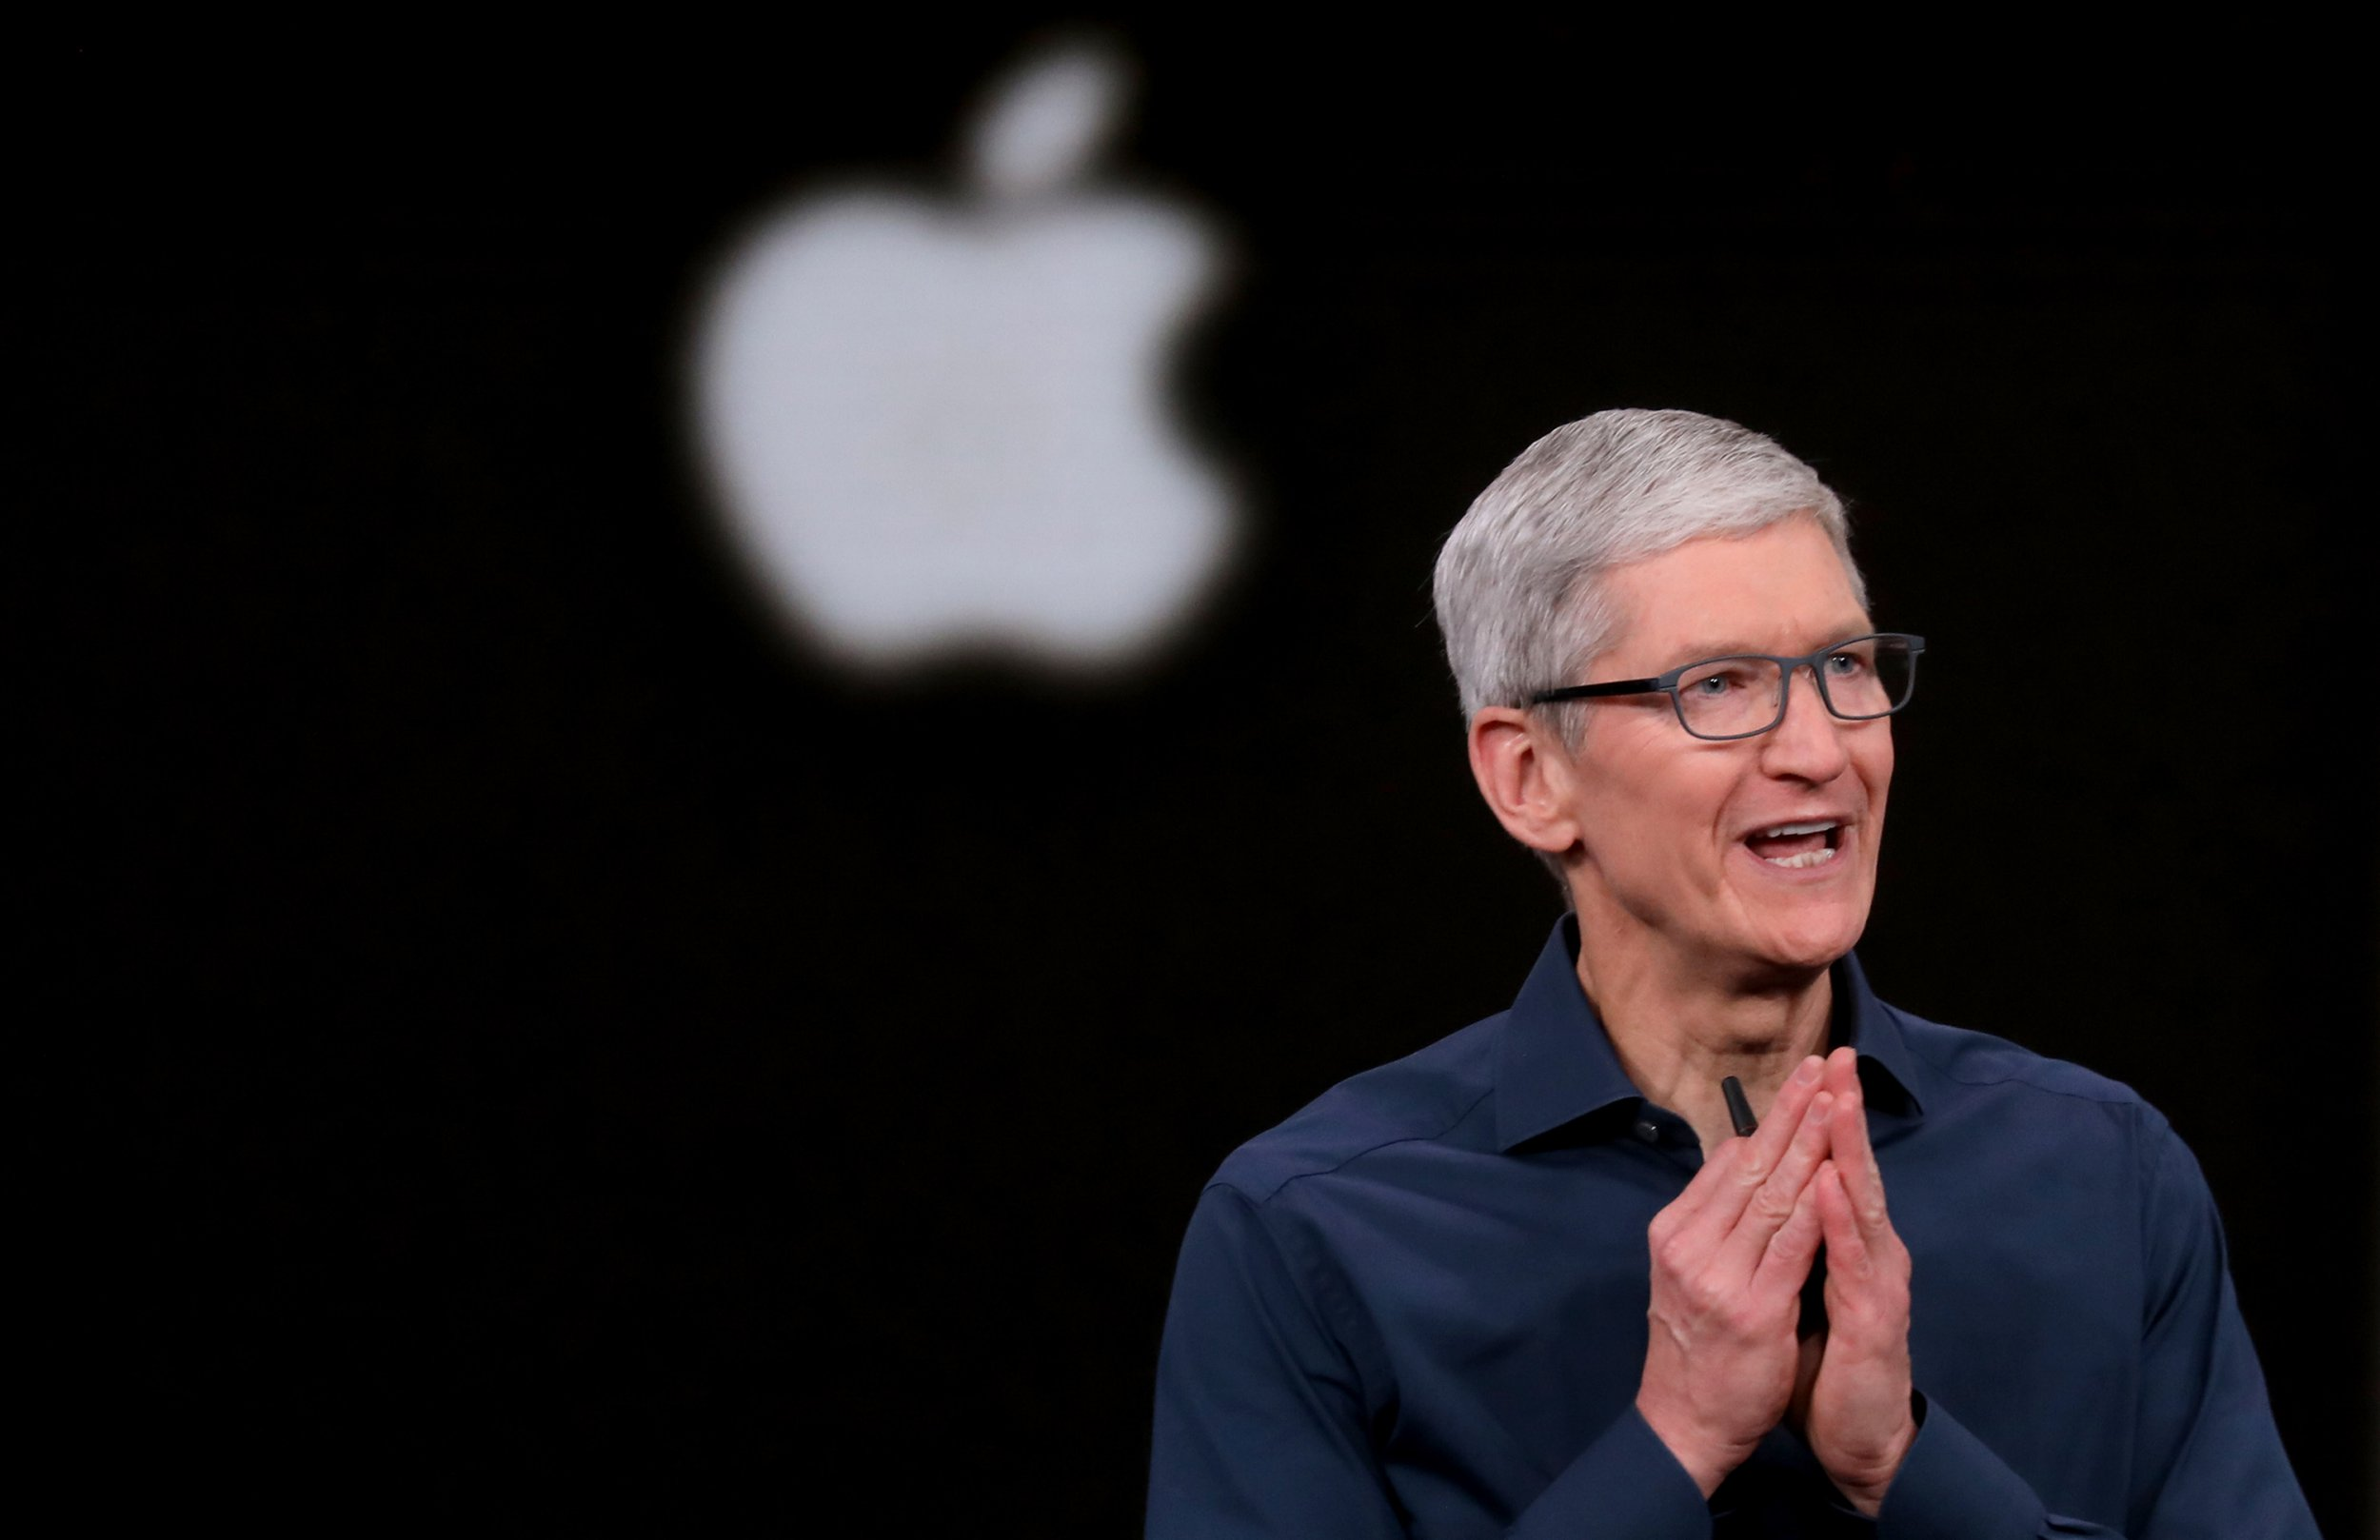 September 12, 2018 - Cupertino, California, U.S. - Tim Cook opens the Apple's annual product launch, Wednesday, Sept. 12, 2018, at company headquarters in Cupertino, Calif. (Credit Image: ?? Karl Mondon/East Bay Times/TNS via ZUMA Wire)